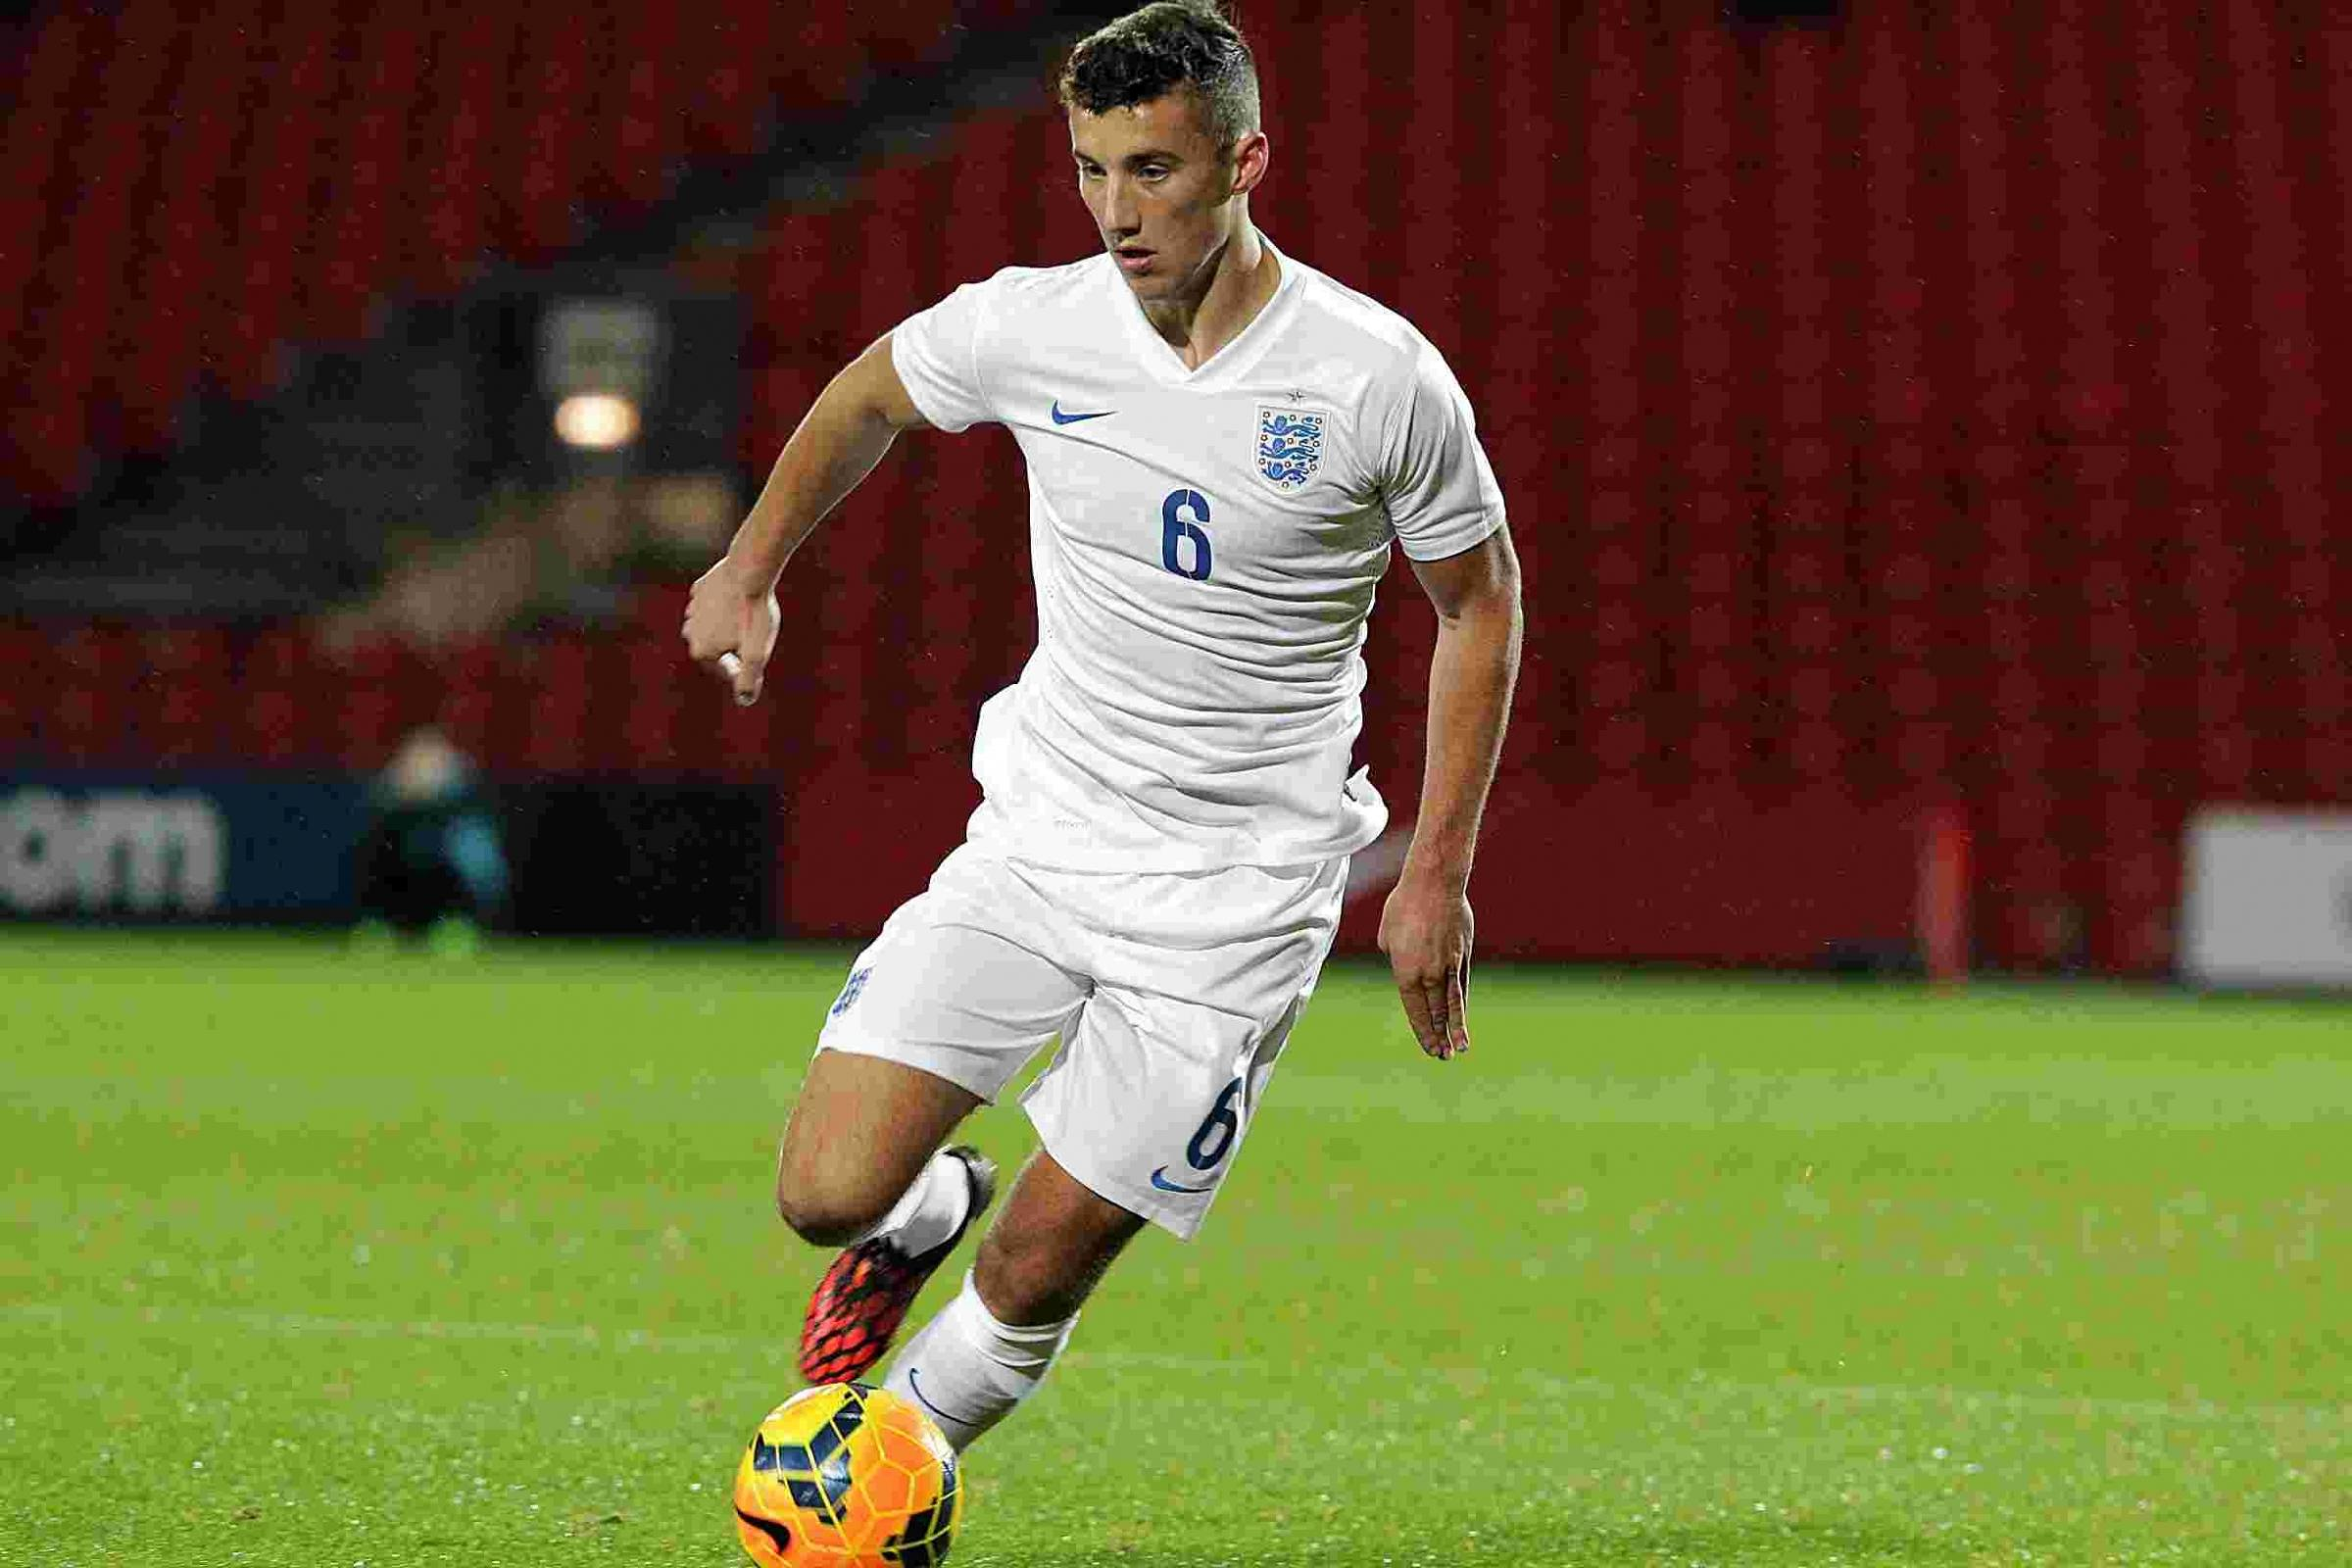 ENGLAND STAR: AFC Bournemouth's Baily Cargill